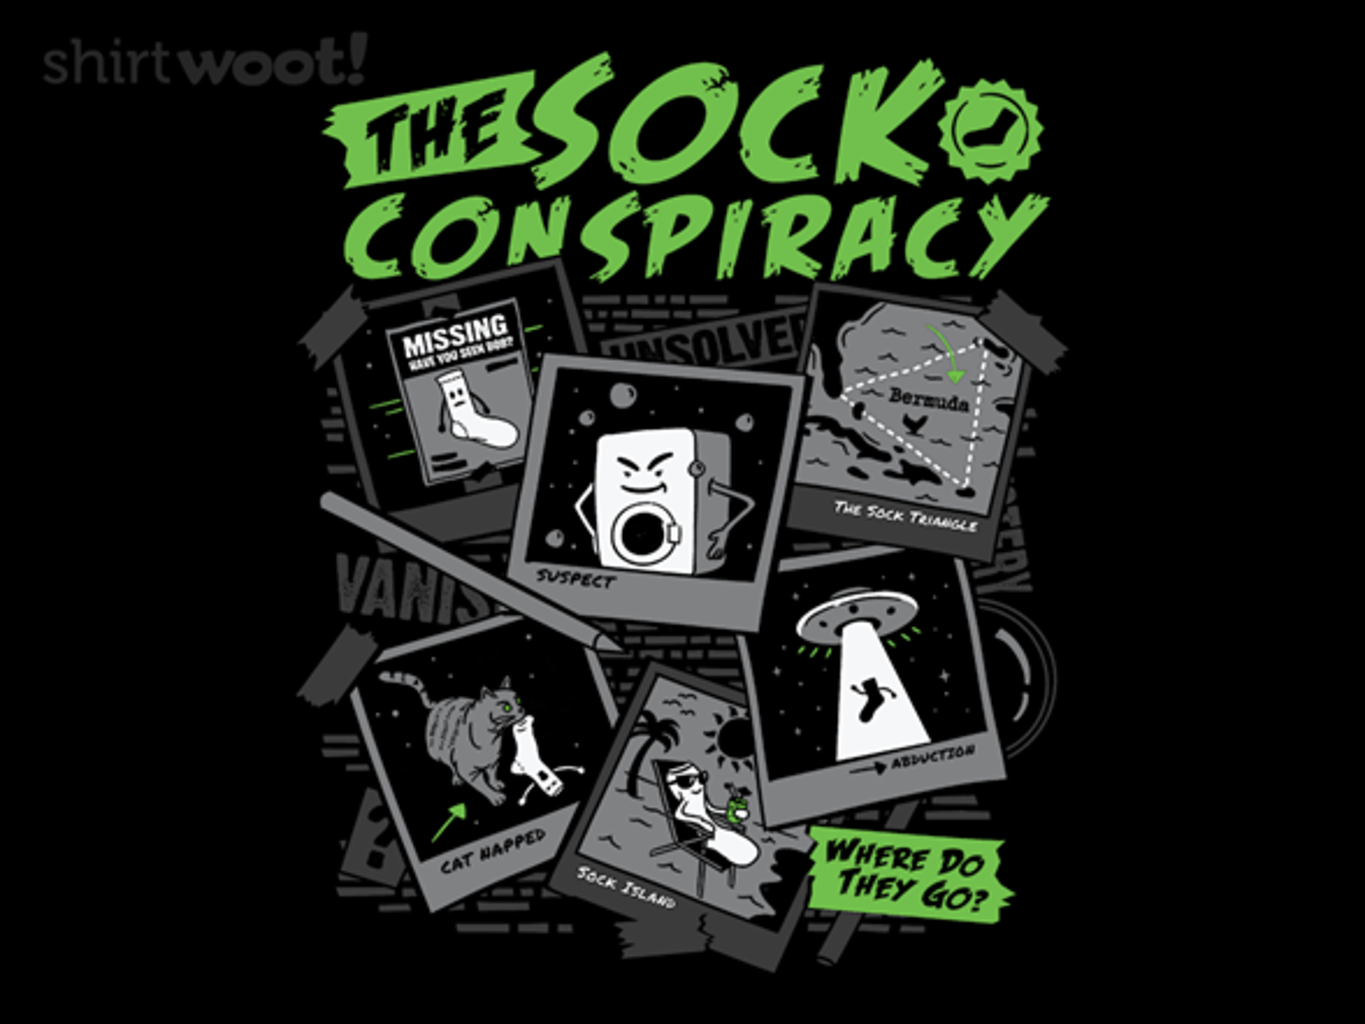 Woot!: The Sock Conspiracy